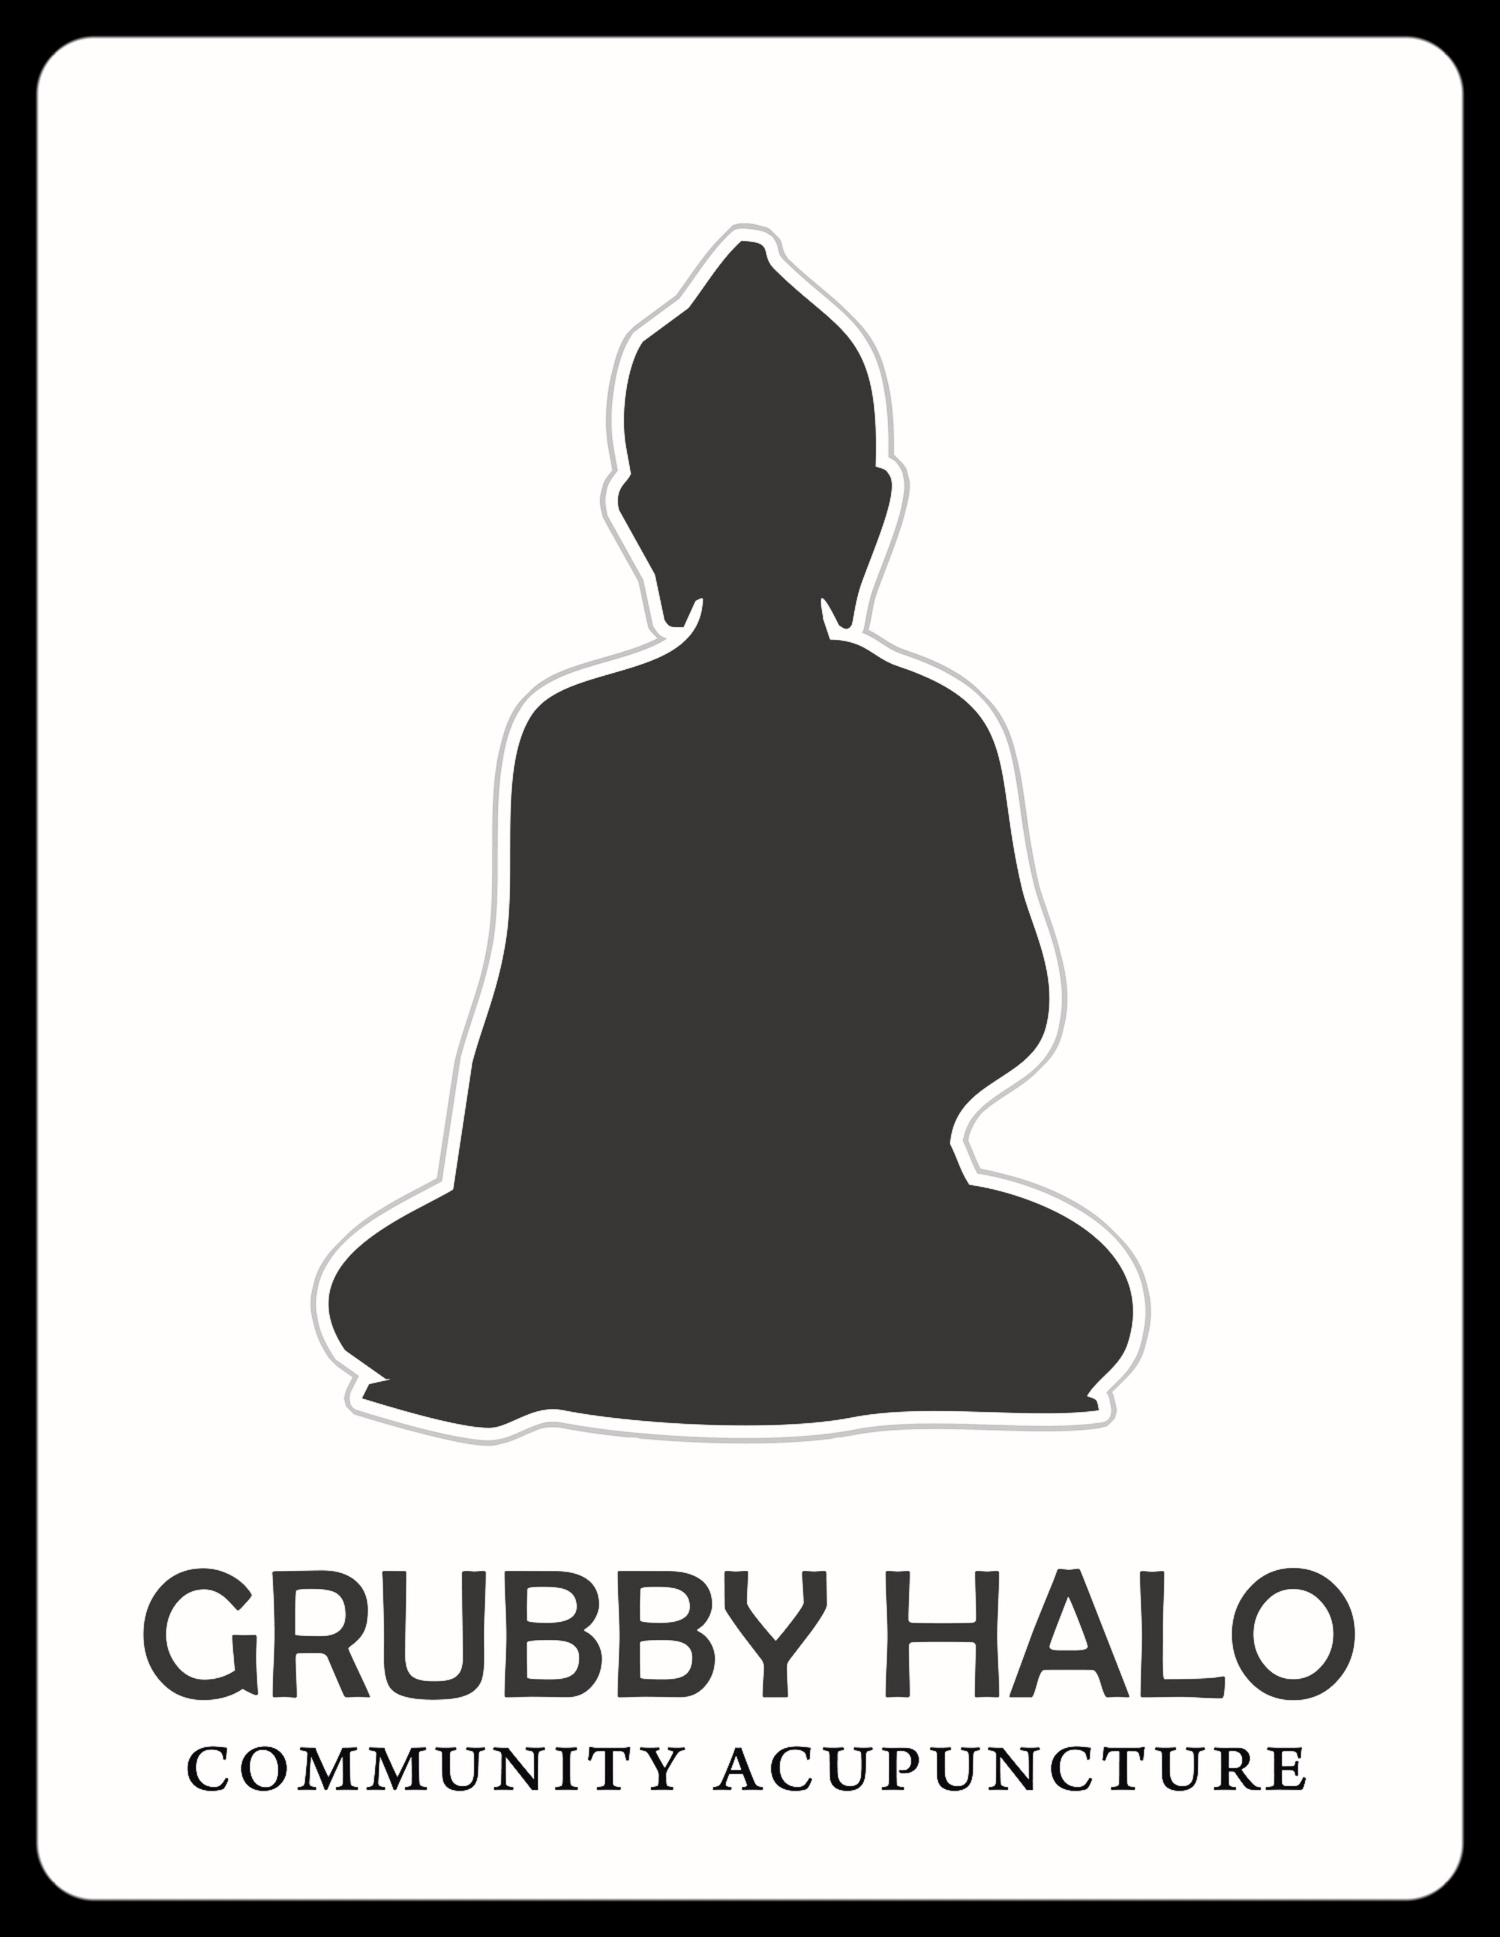 Grubby Halo Acupuncture